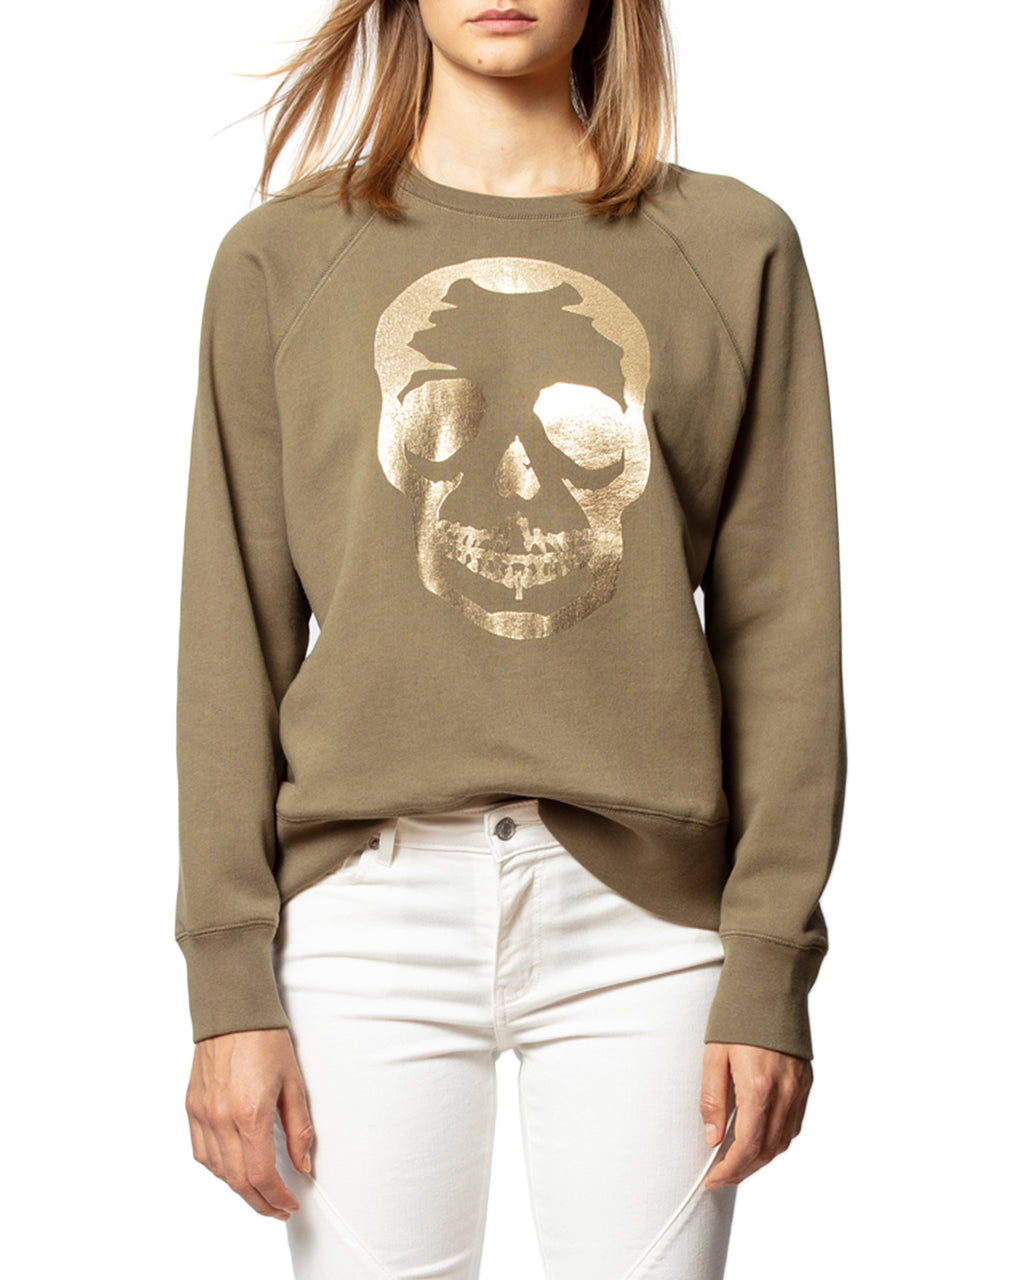 Upper Skull Gold Sweatshirt Khaki